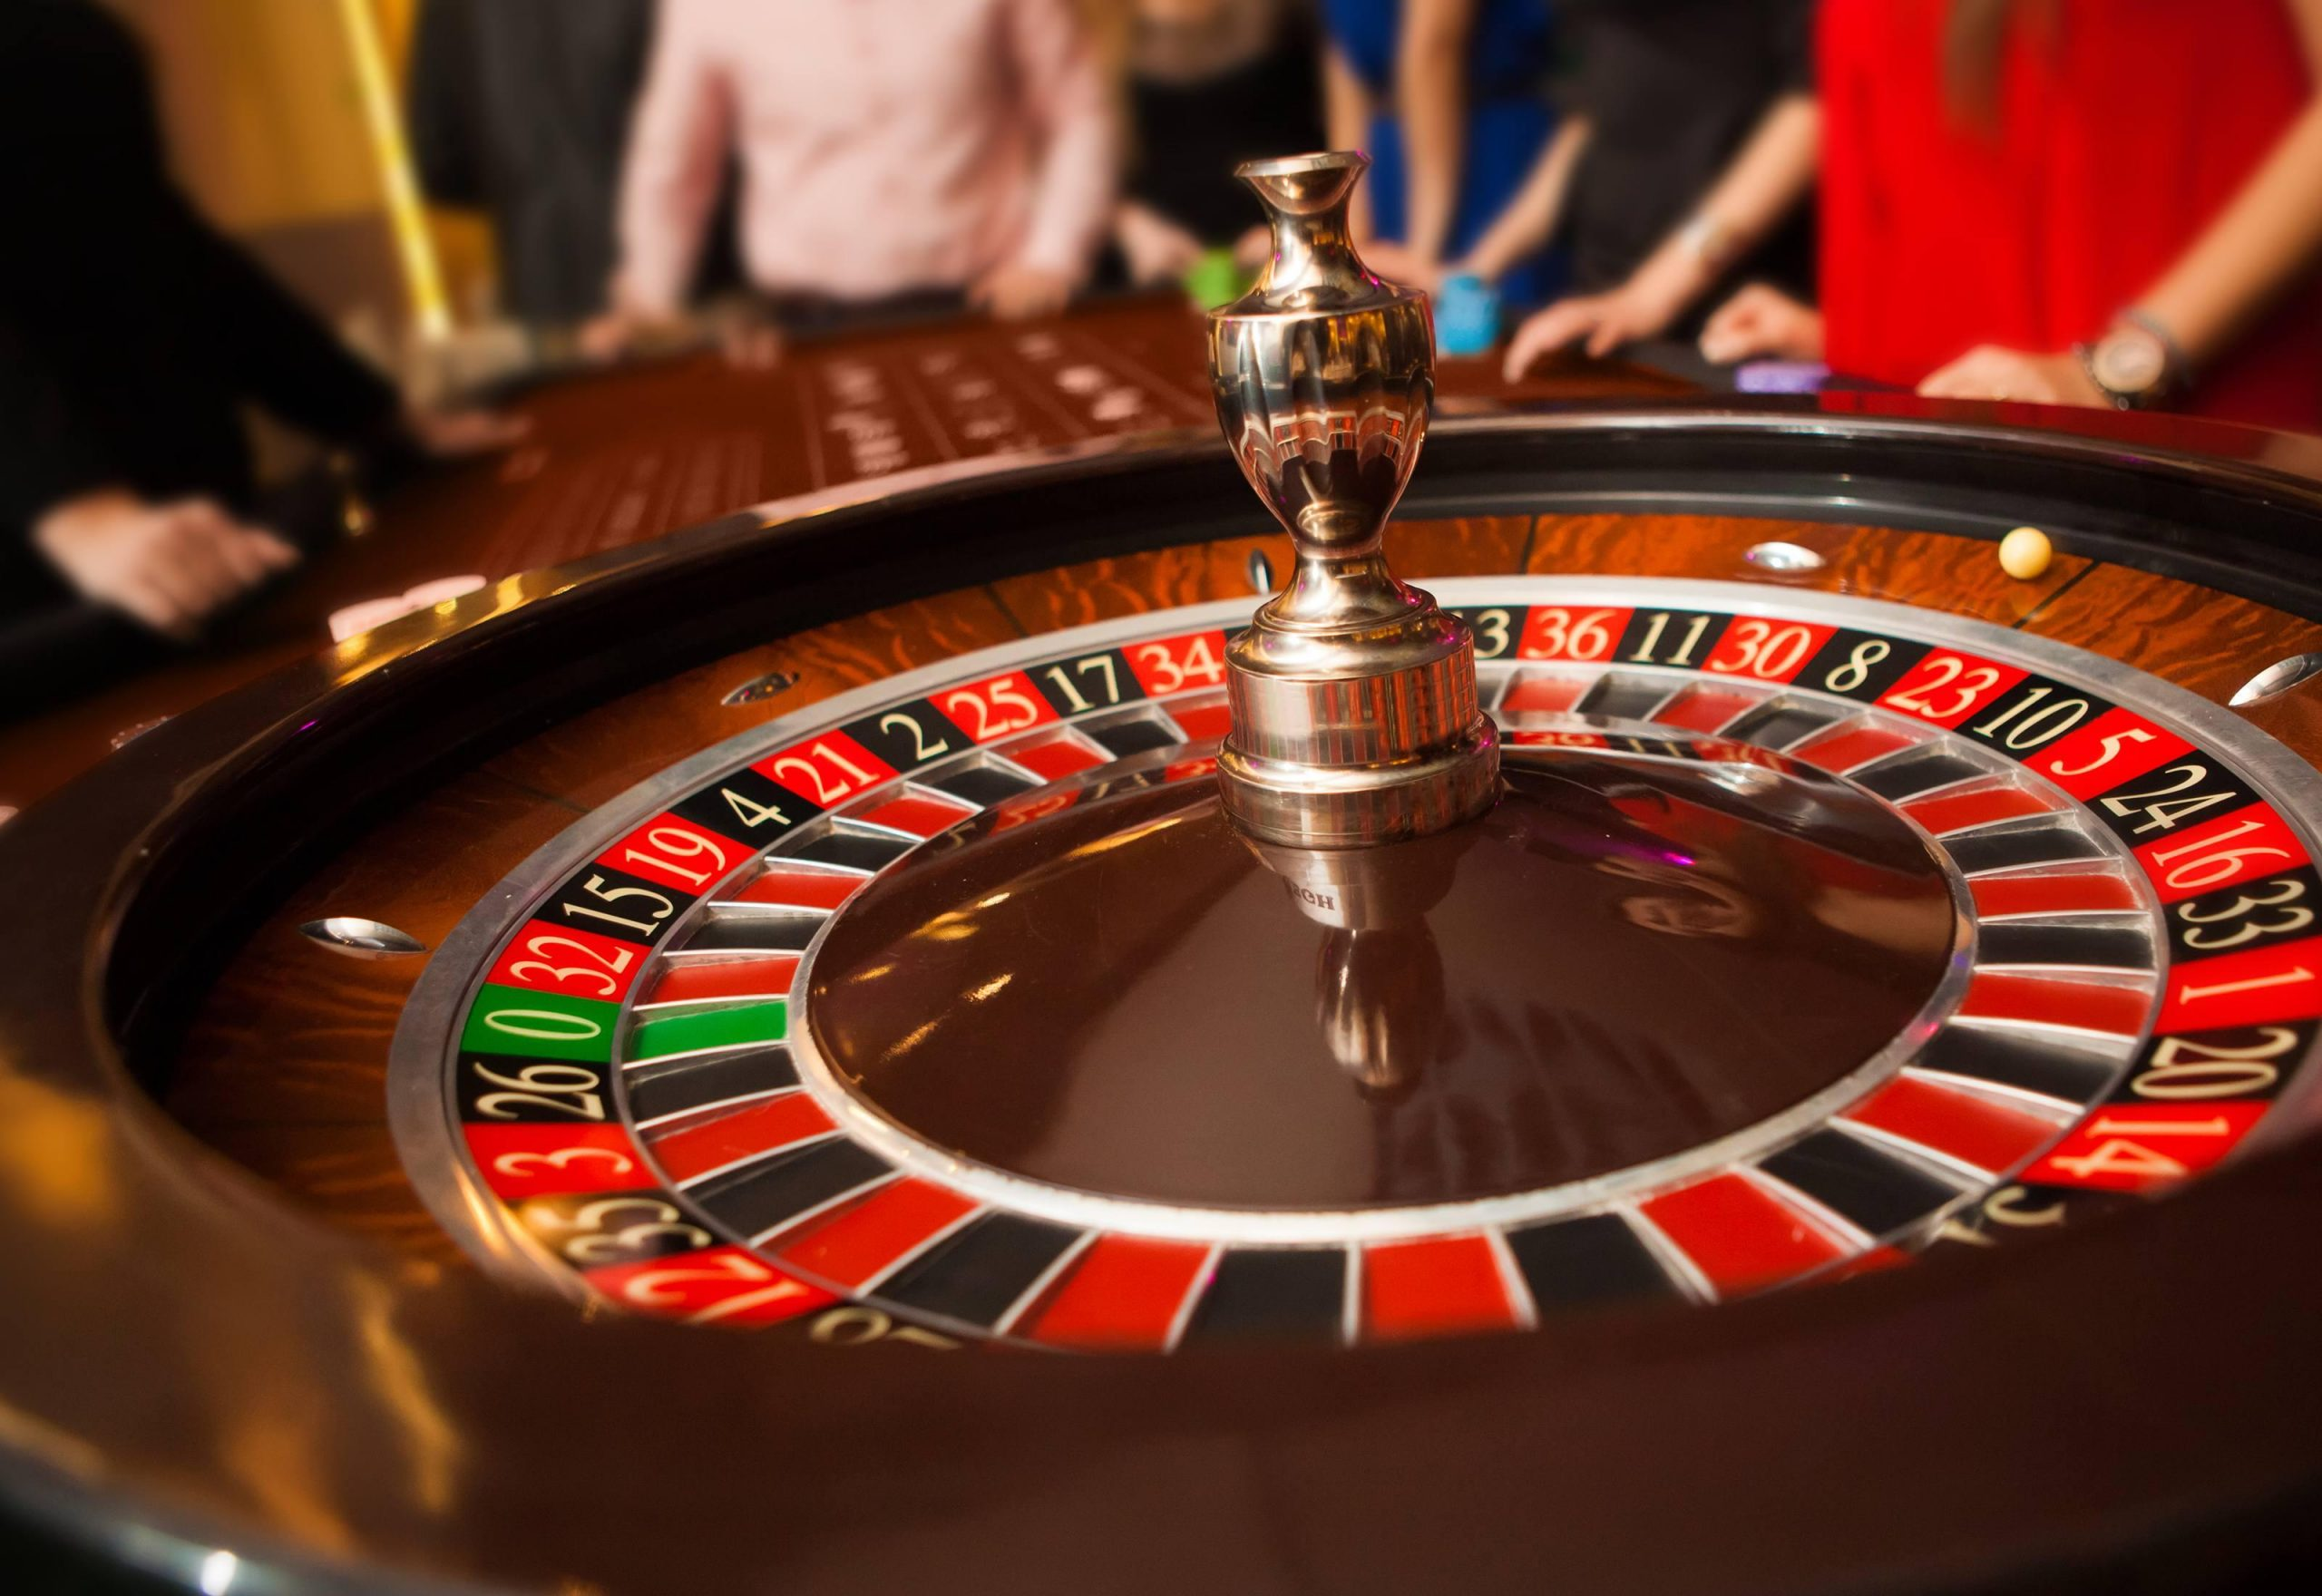 Find The Best Online Casinos At Online Casino